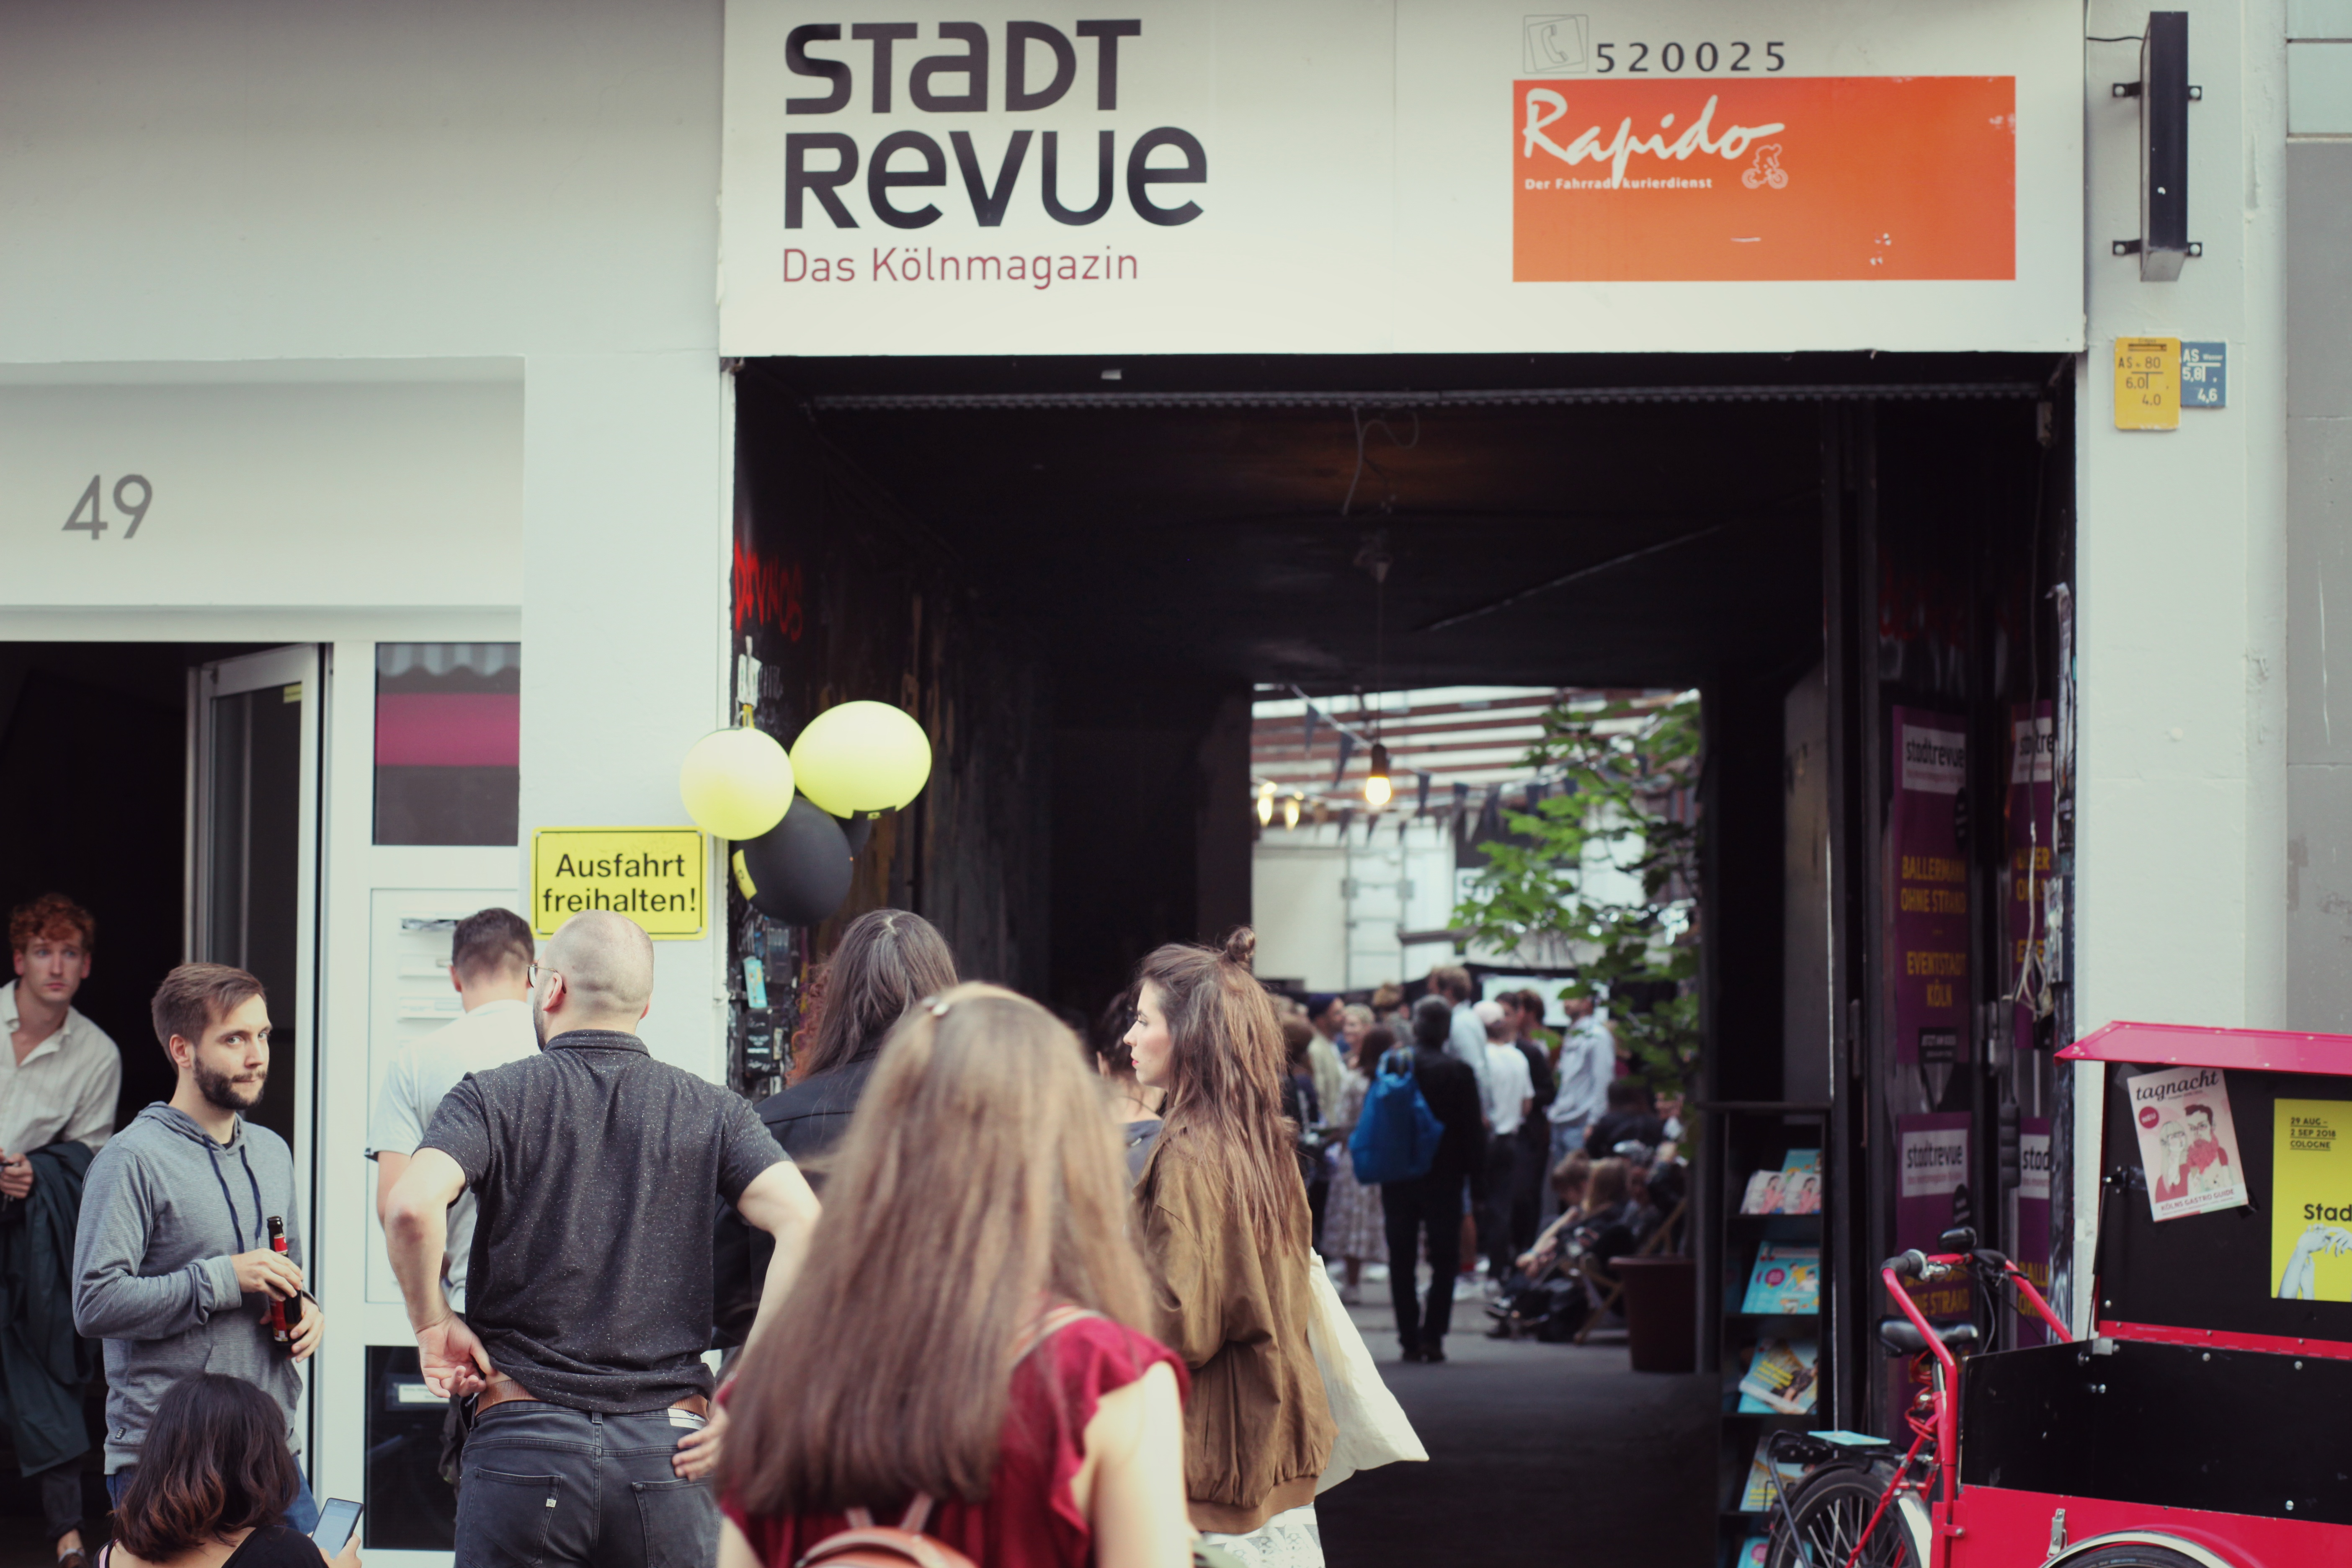 Stadtrevue. Photo by Felix Weichelt